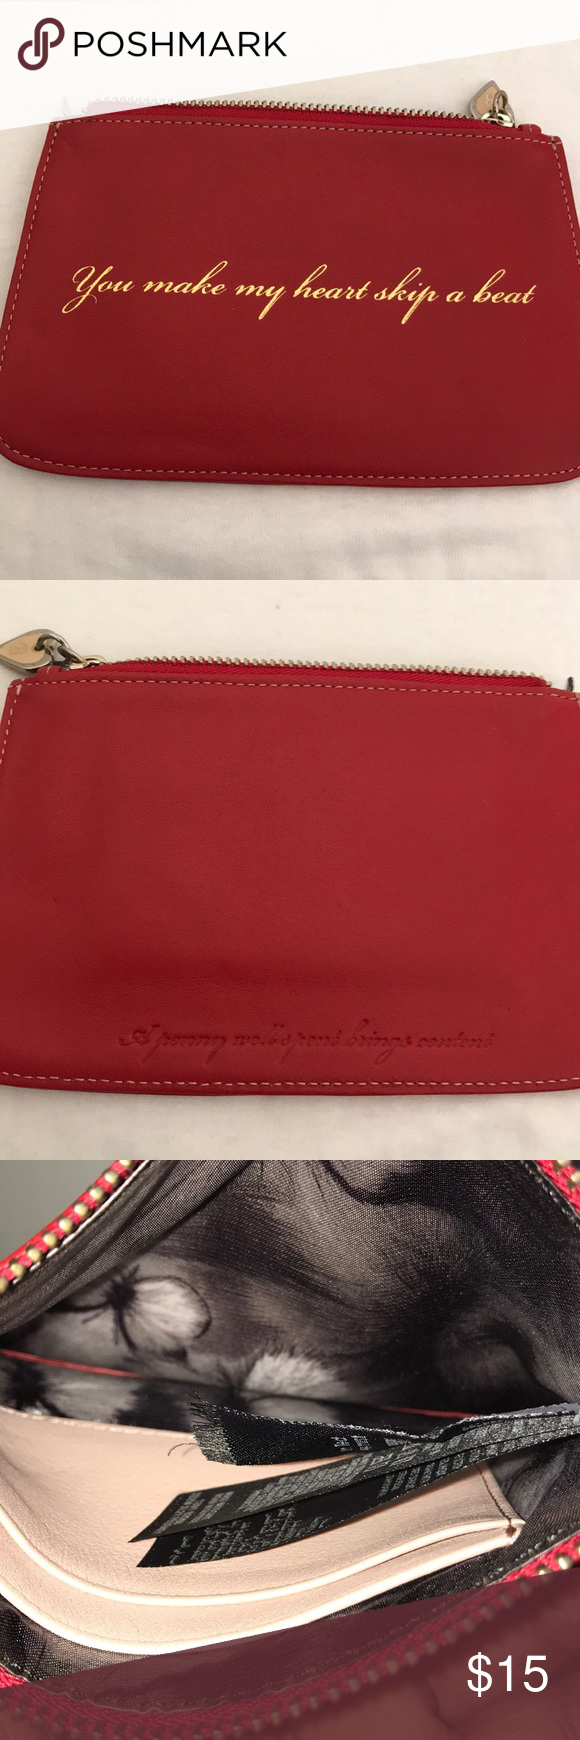 "1c029f2ea Ted Baker coin purse Red Ted Baker coin purse. Front says ""you make my"